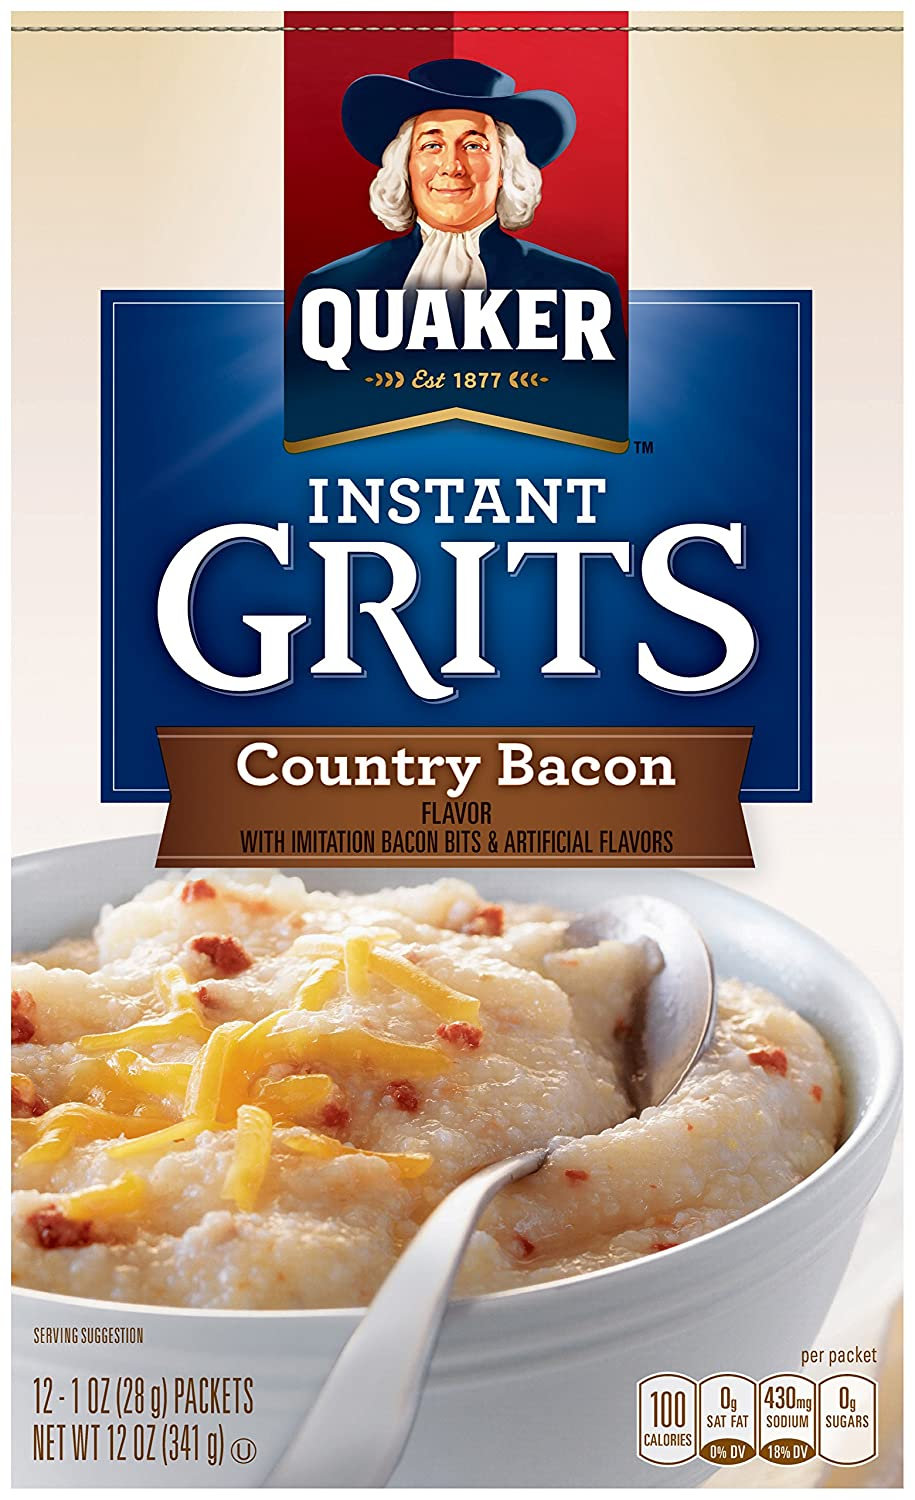 Quaker Instant Grits, Country Bacon Flavor, 12 Packets Per Box (Pack of 12 Boxes)